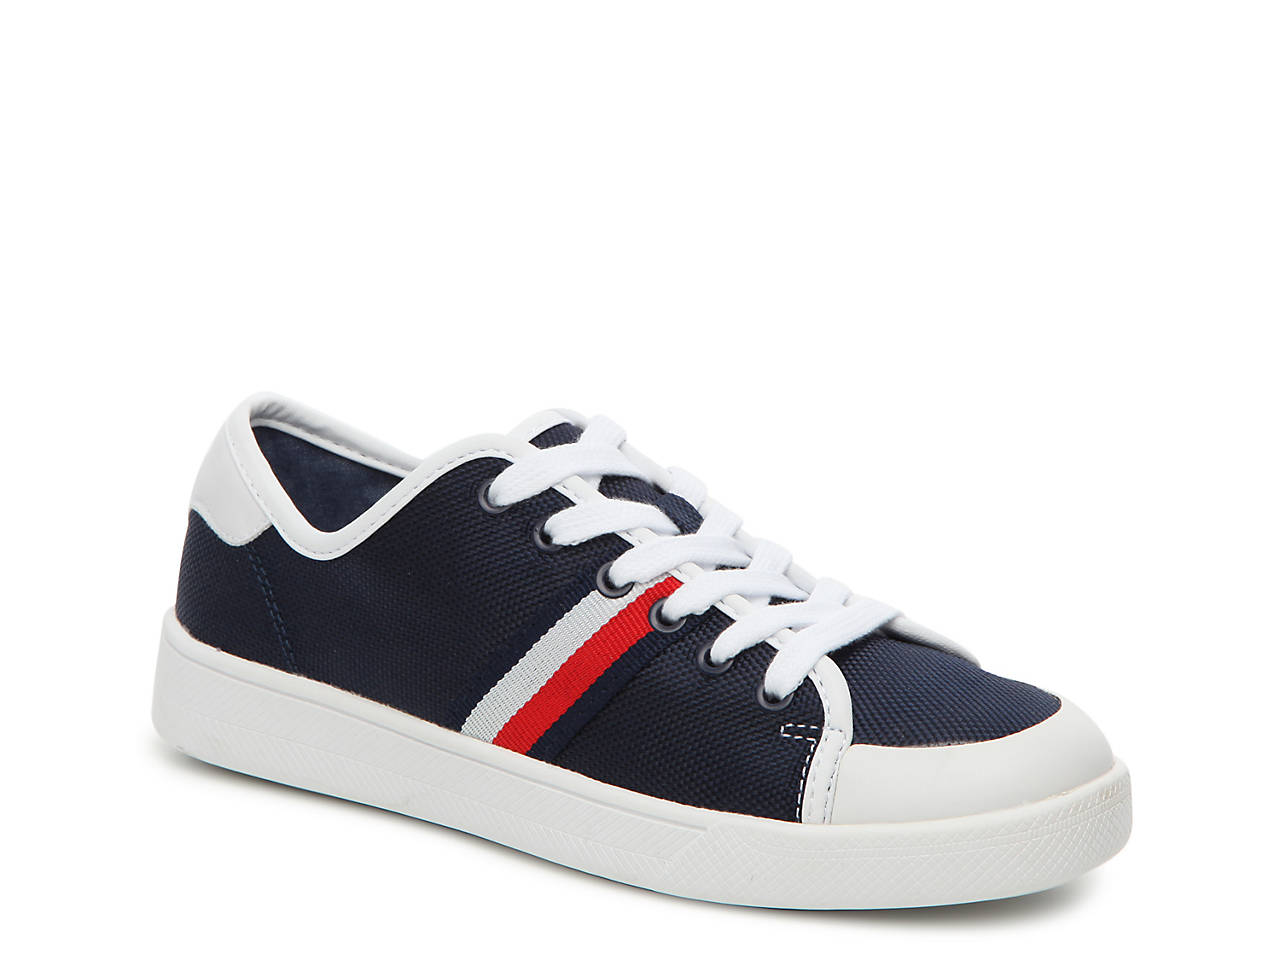 Sneakers Am TOMMY HILFIGER VAUDE Moab Am Sneakers Marrón Dark Marrón/Negro/Sun 5d810c